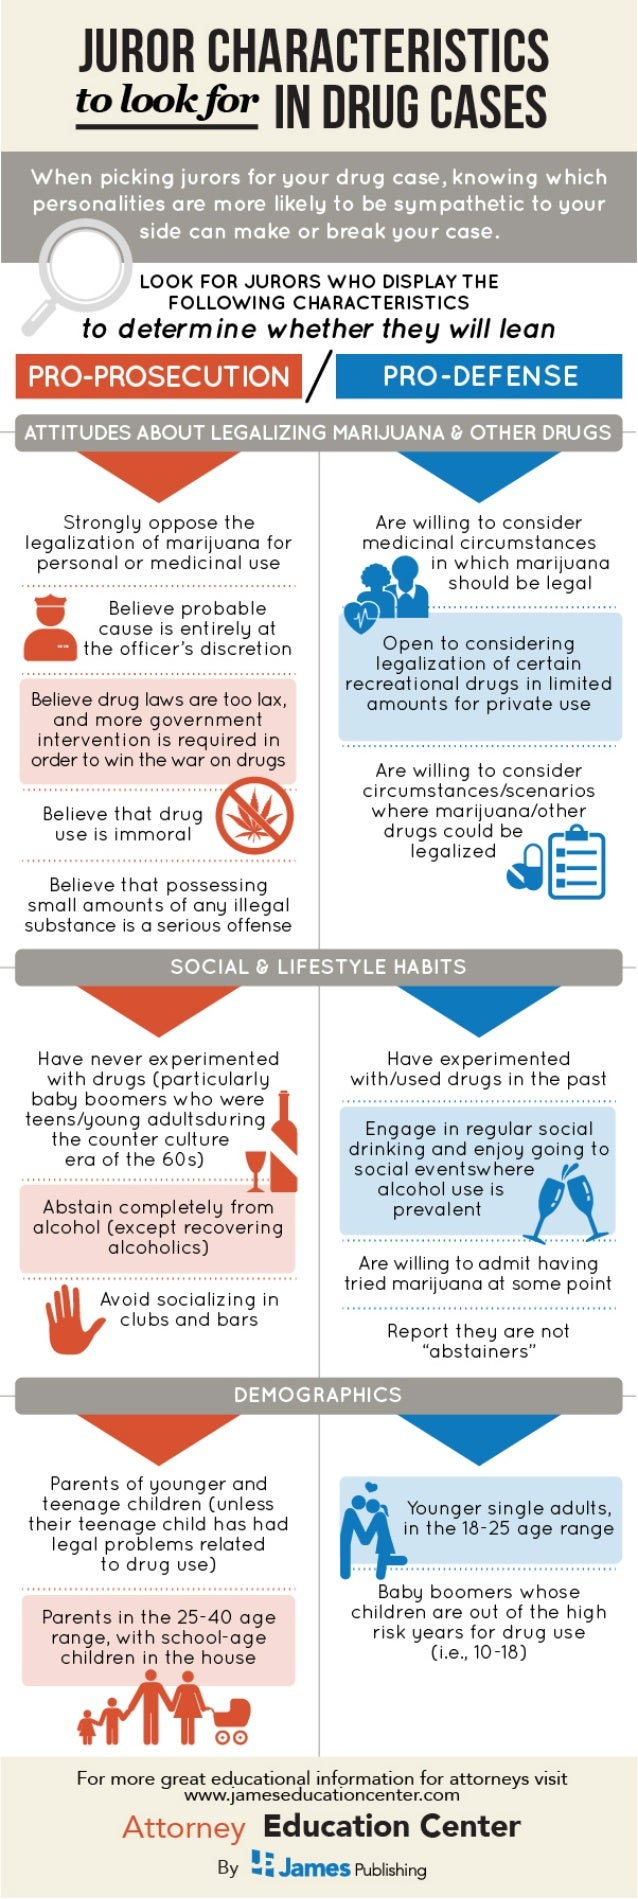 Juror Characteristics to Look for in Drug Cases